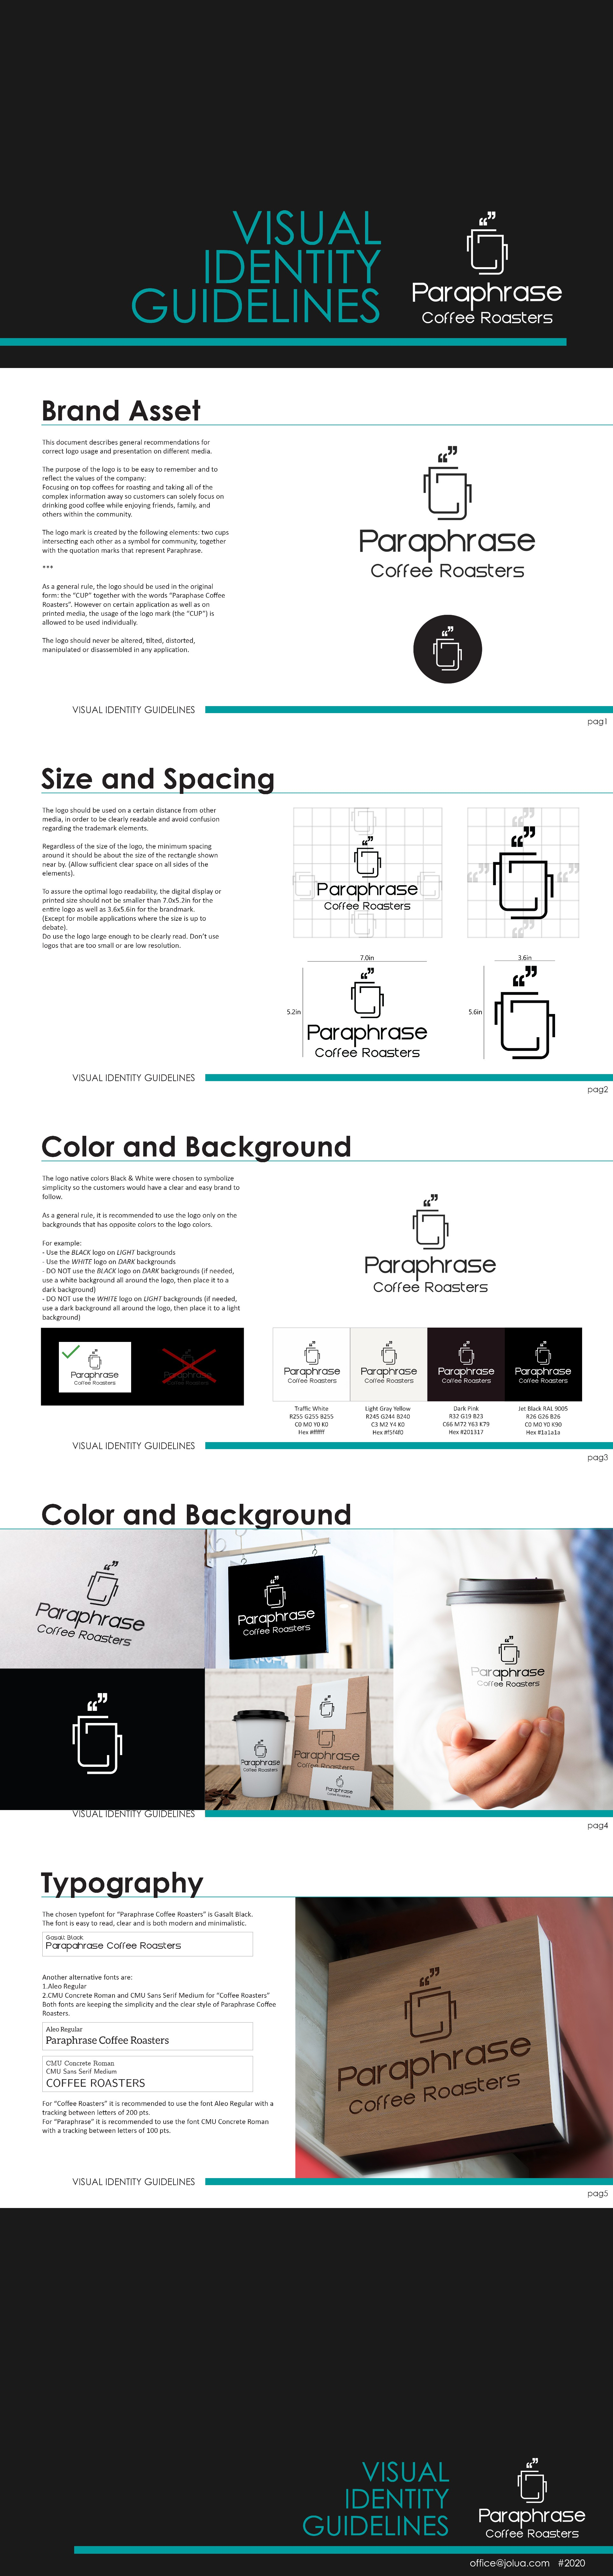 A creative logo for easy brand identification for a coffee roaster